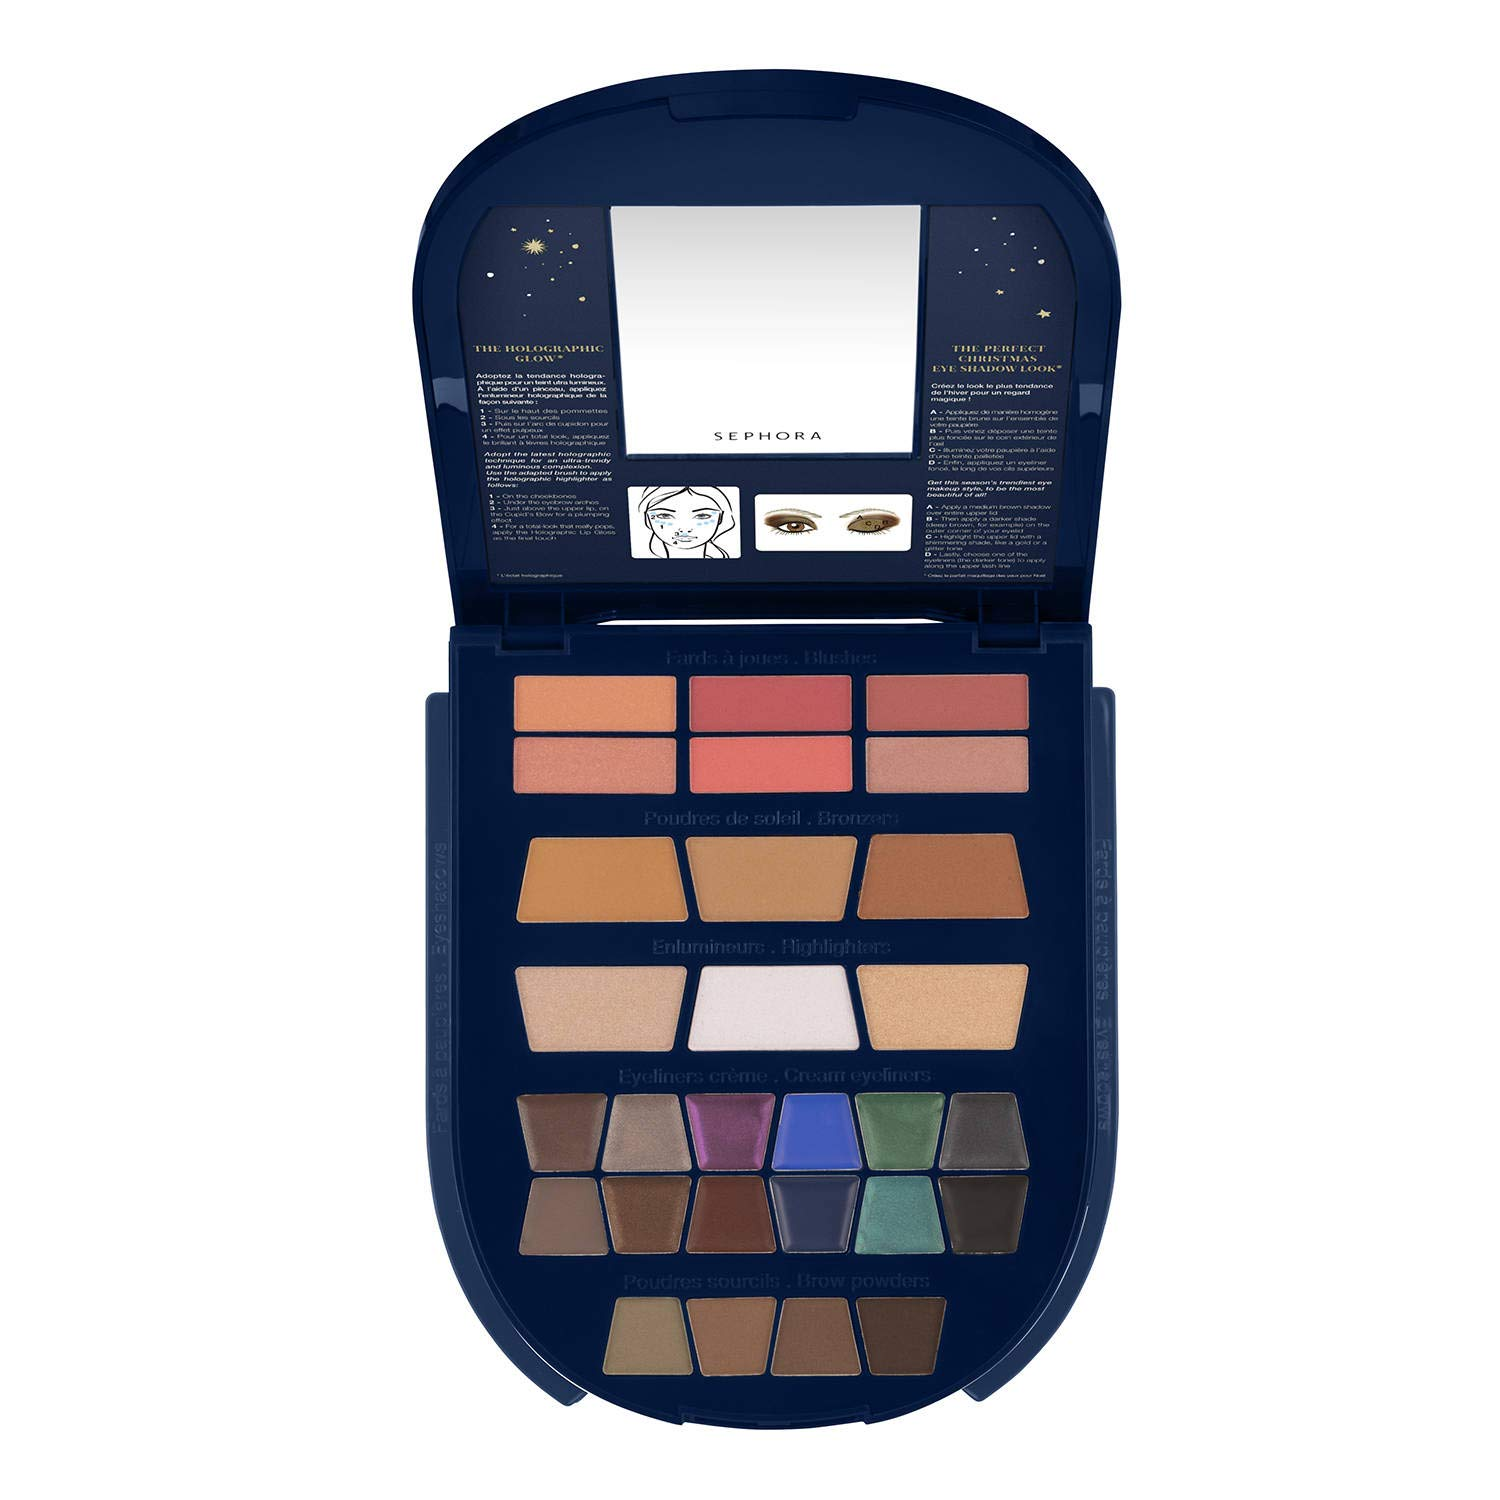 Sephora Once Upon A Night Makeup Palette - Holiday Blockbuster Palette by SEPHORA COLLECTION